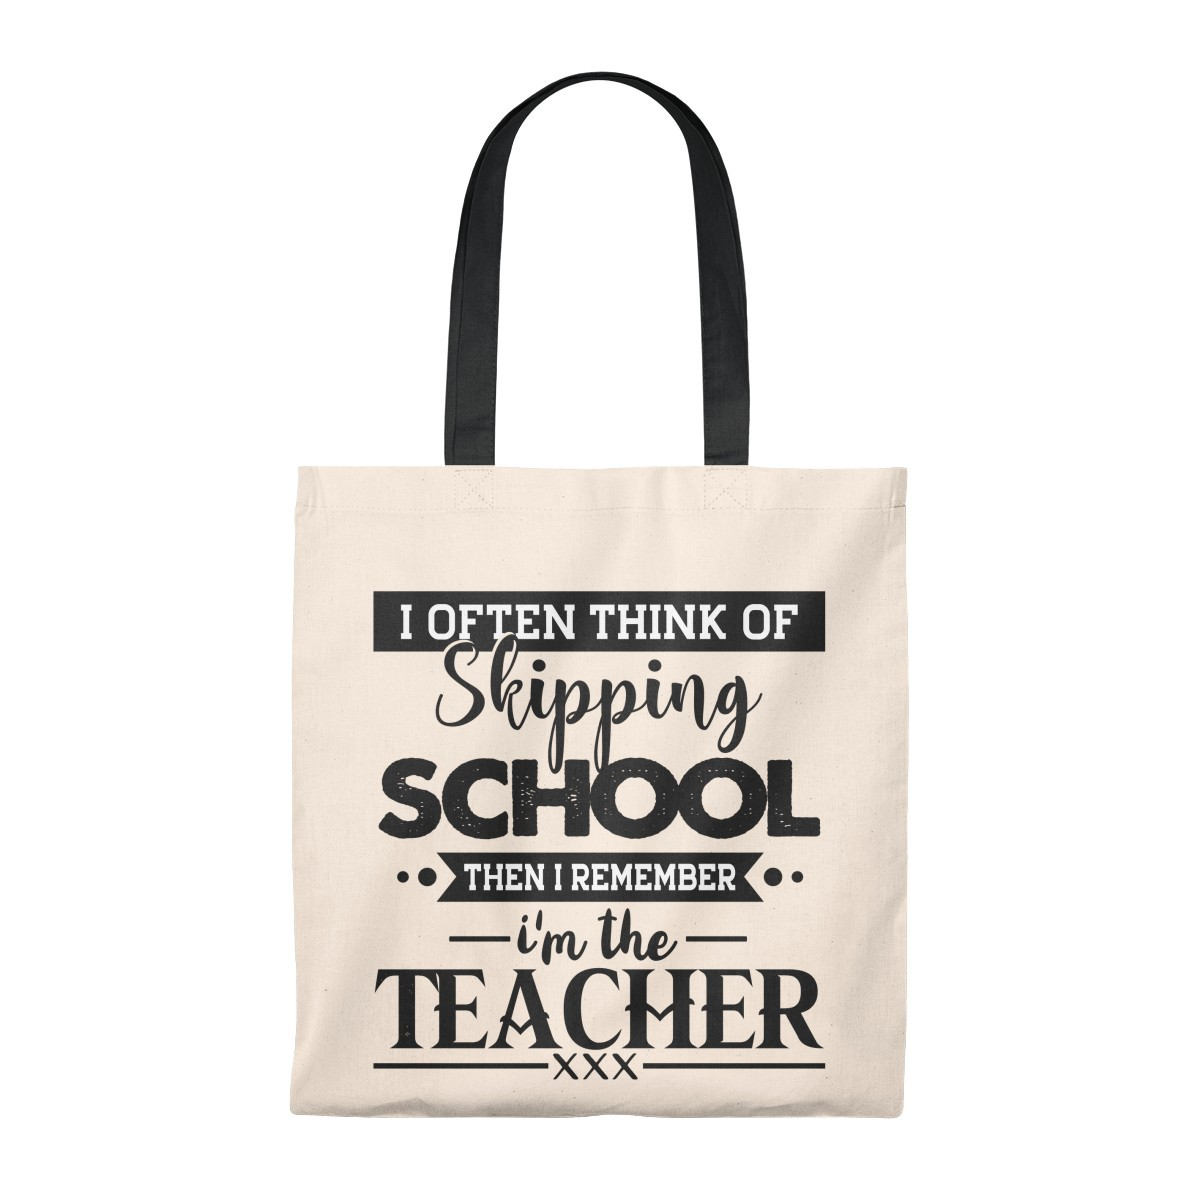 Teacher Tote Bag Often Think Of